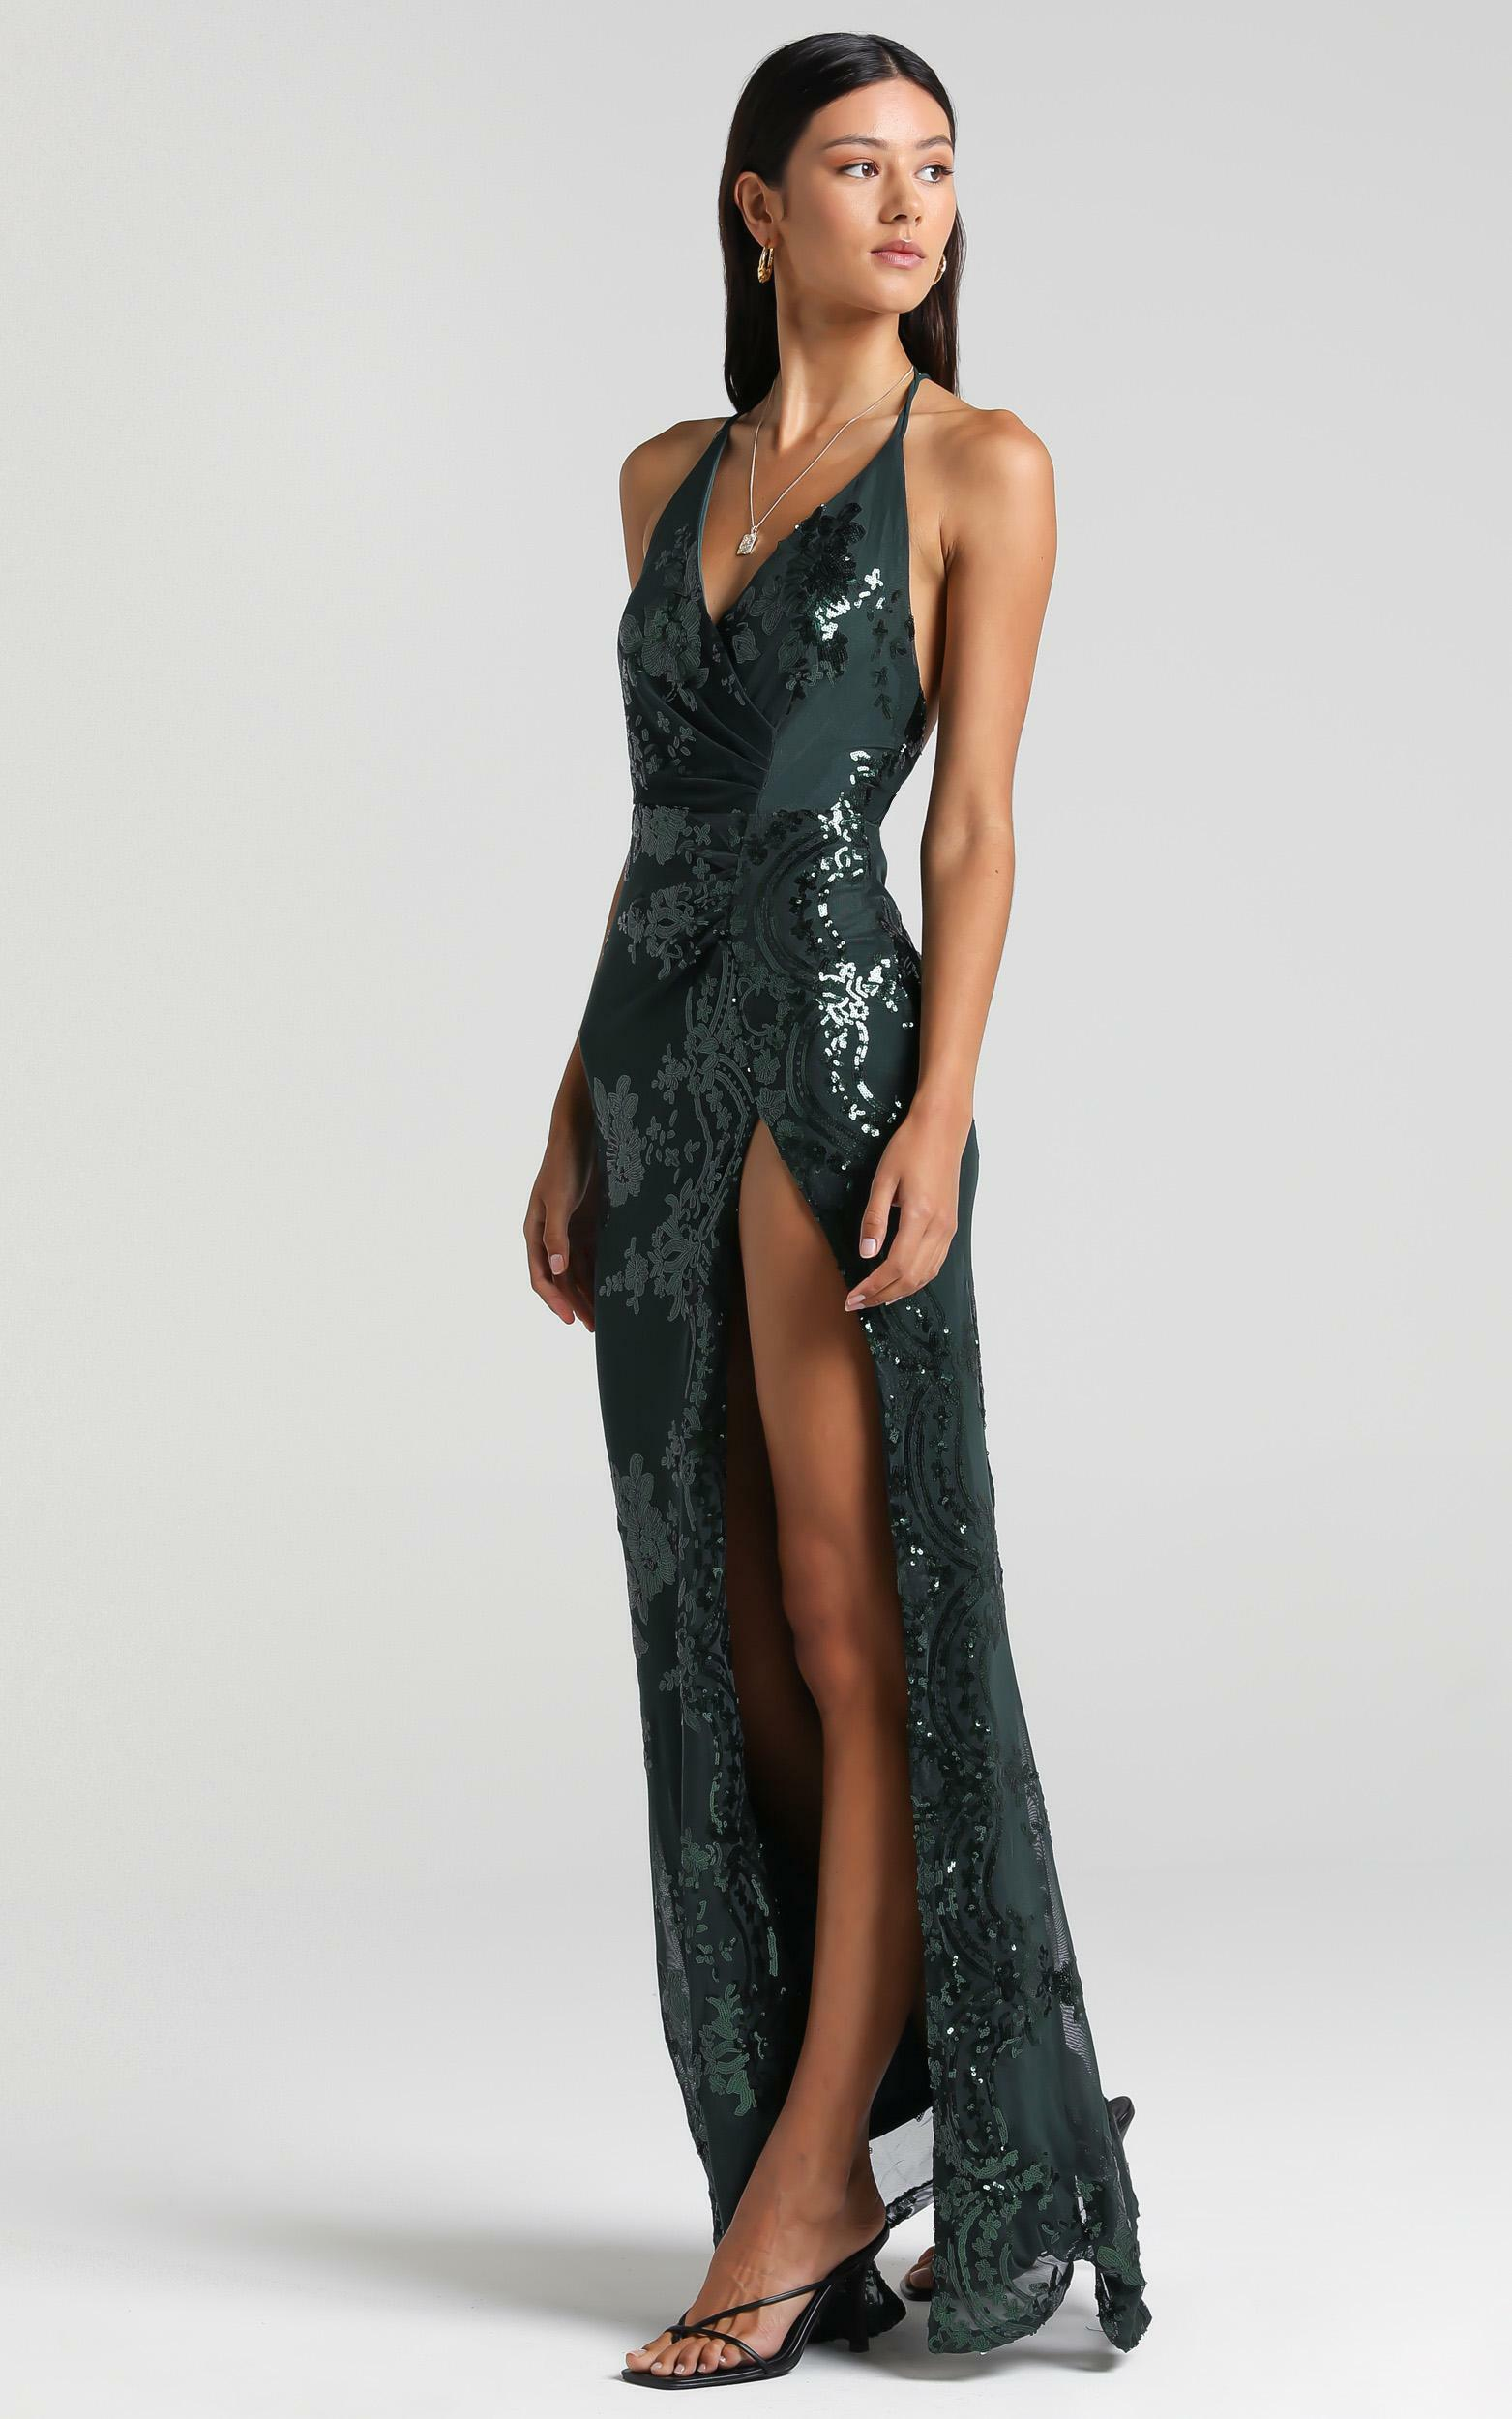 Out Till Dawn Maxi Dress in Emerald Sequin - 06, GRN2, hi-res image number null